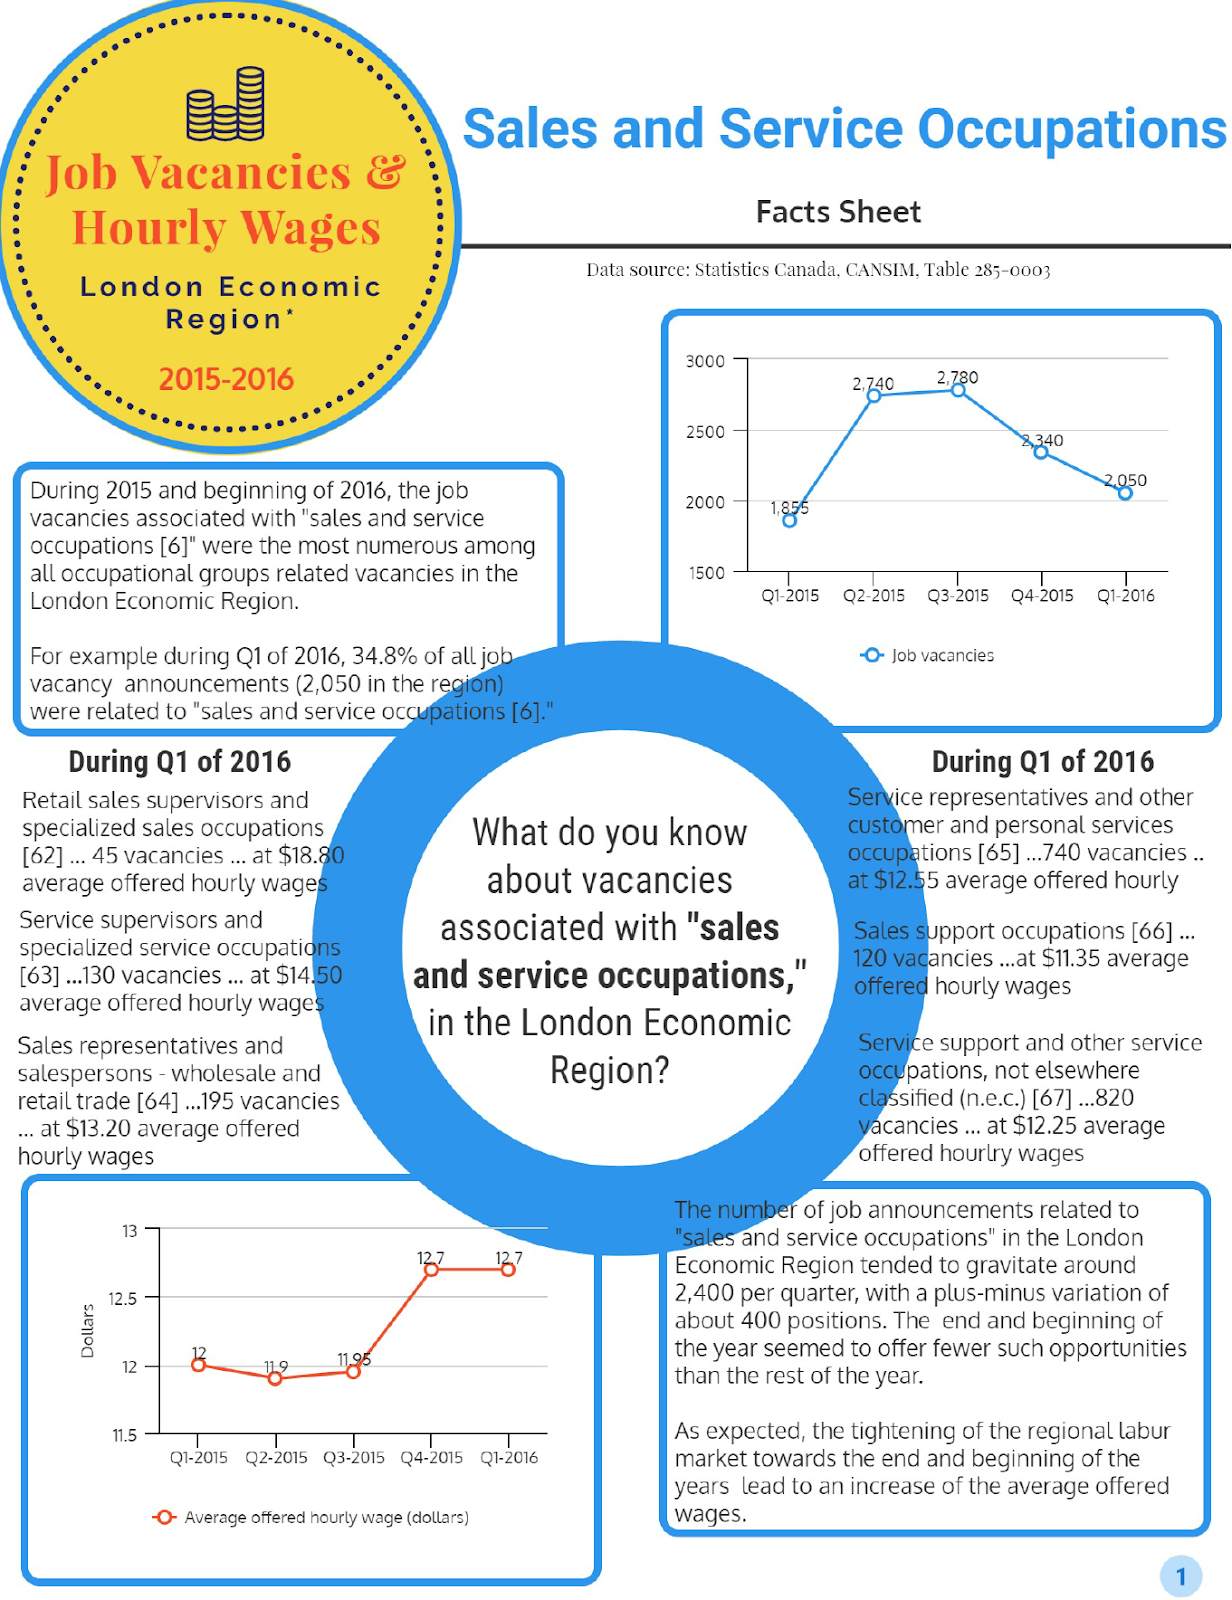 Fact Sheet on Sales and Service Occupations